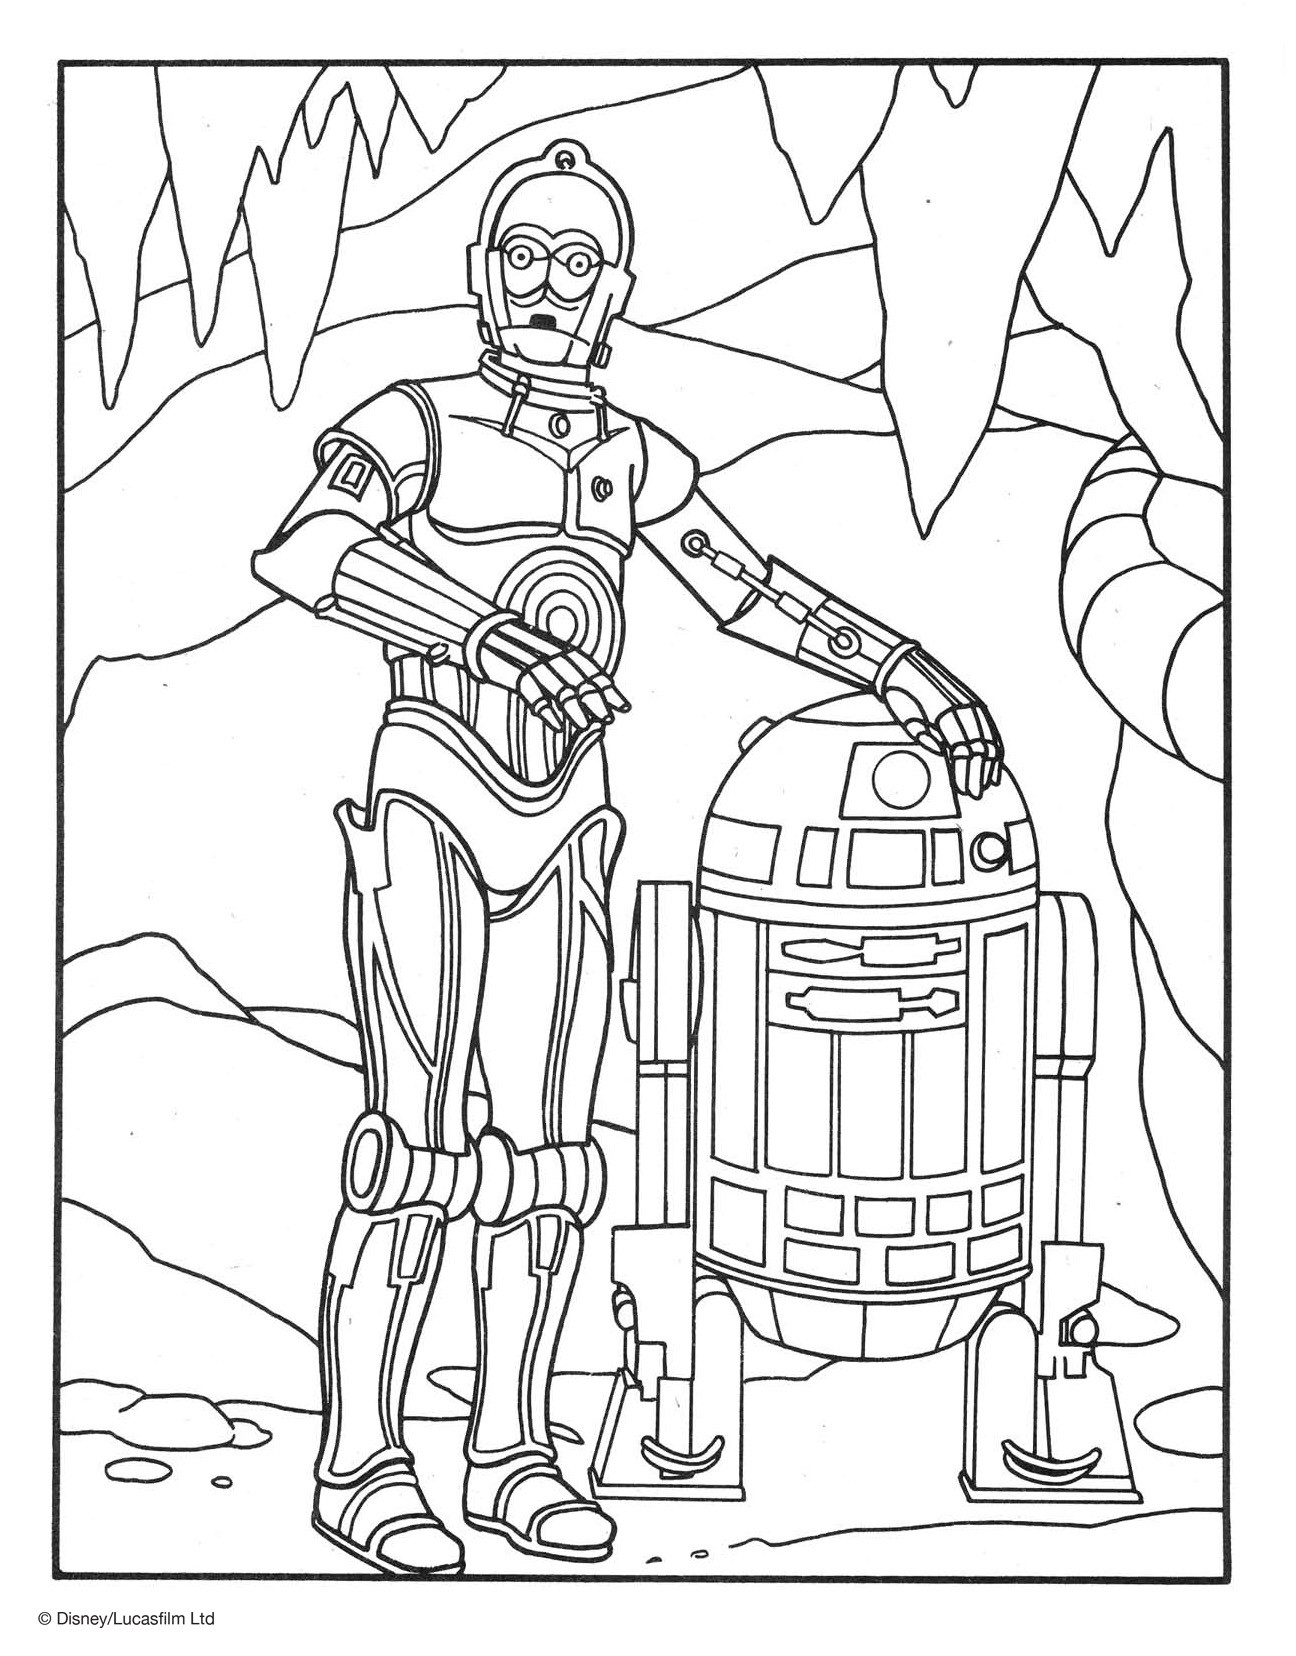 Ausmalbilder Glücksbärchis Frisch R2d2 and C3po Coloring Page Disney Family Fotos